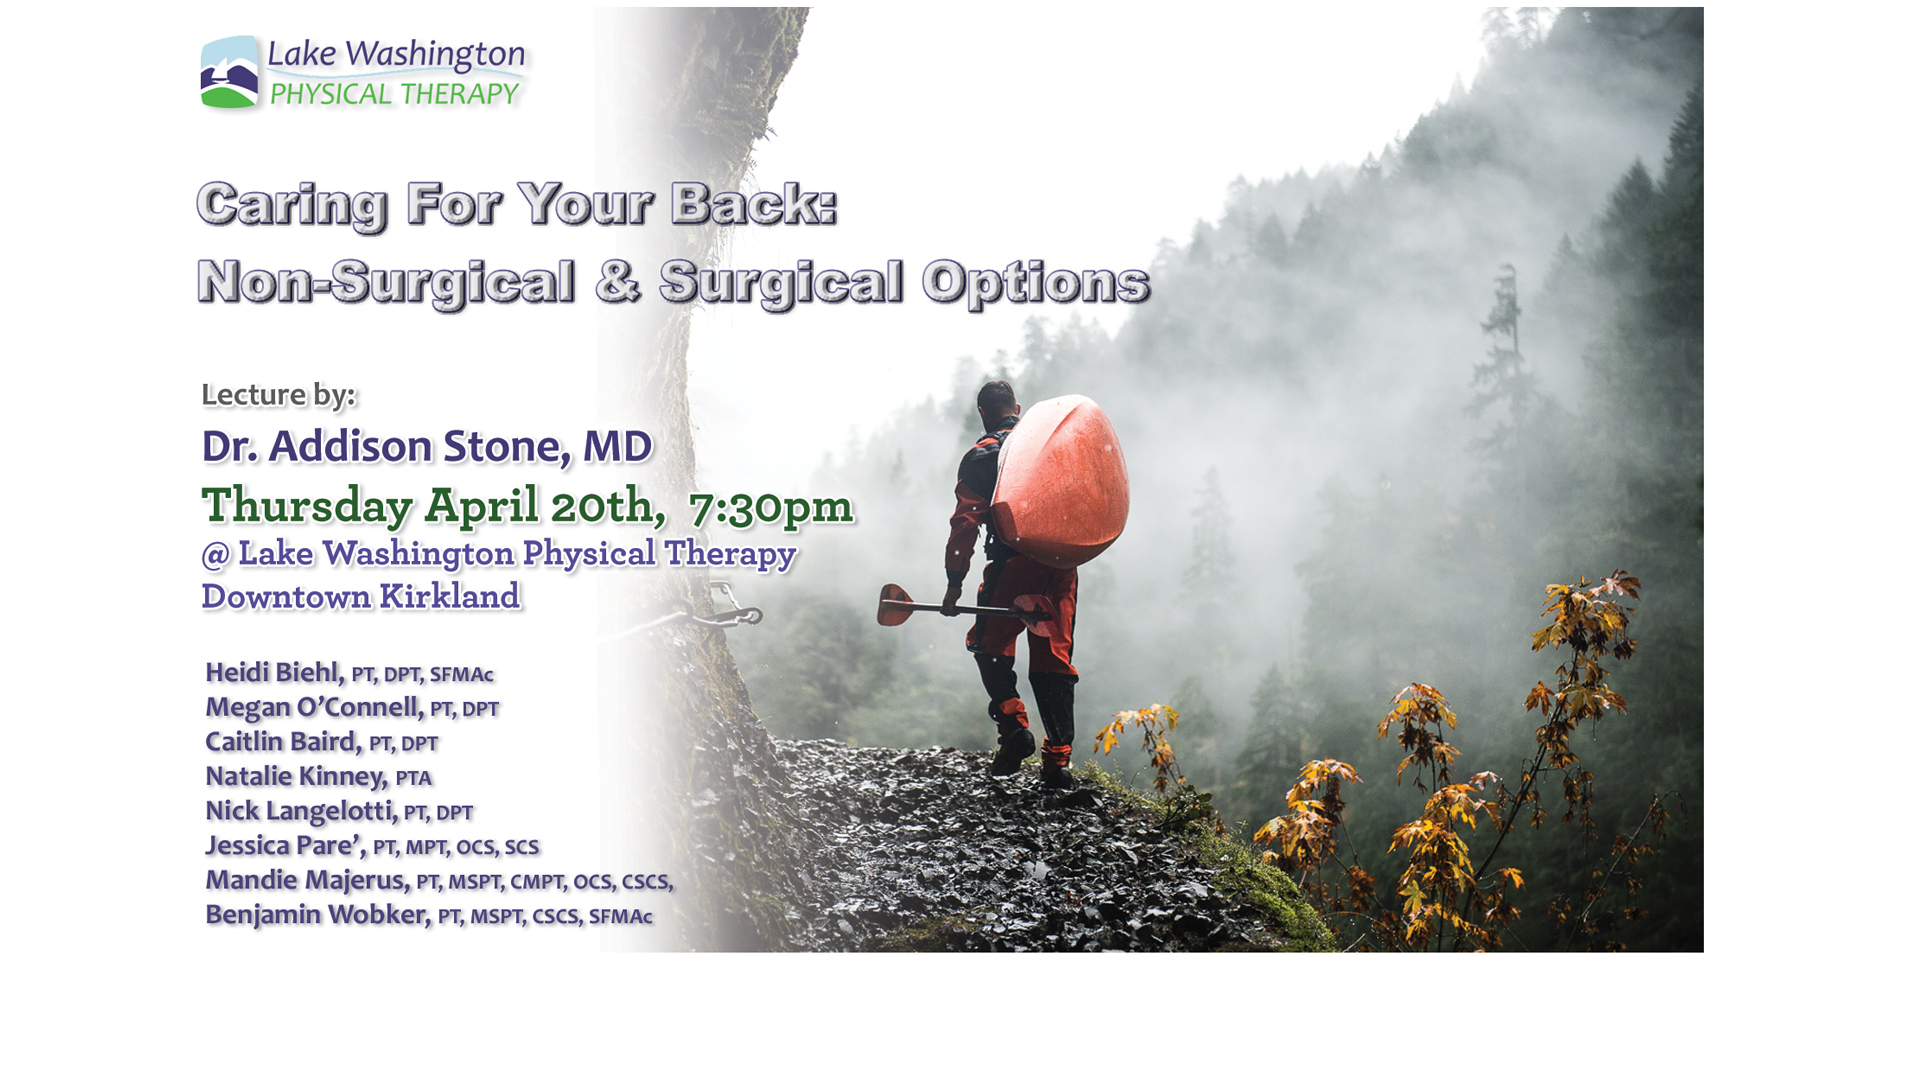 Dr. Addison StoneLumbar Spine Lecture - More on Dr. Stone